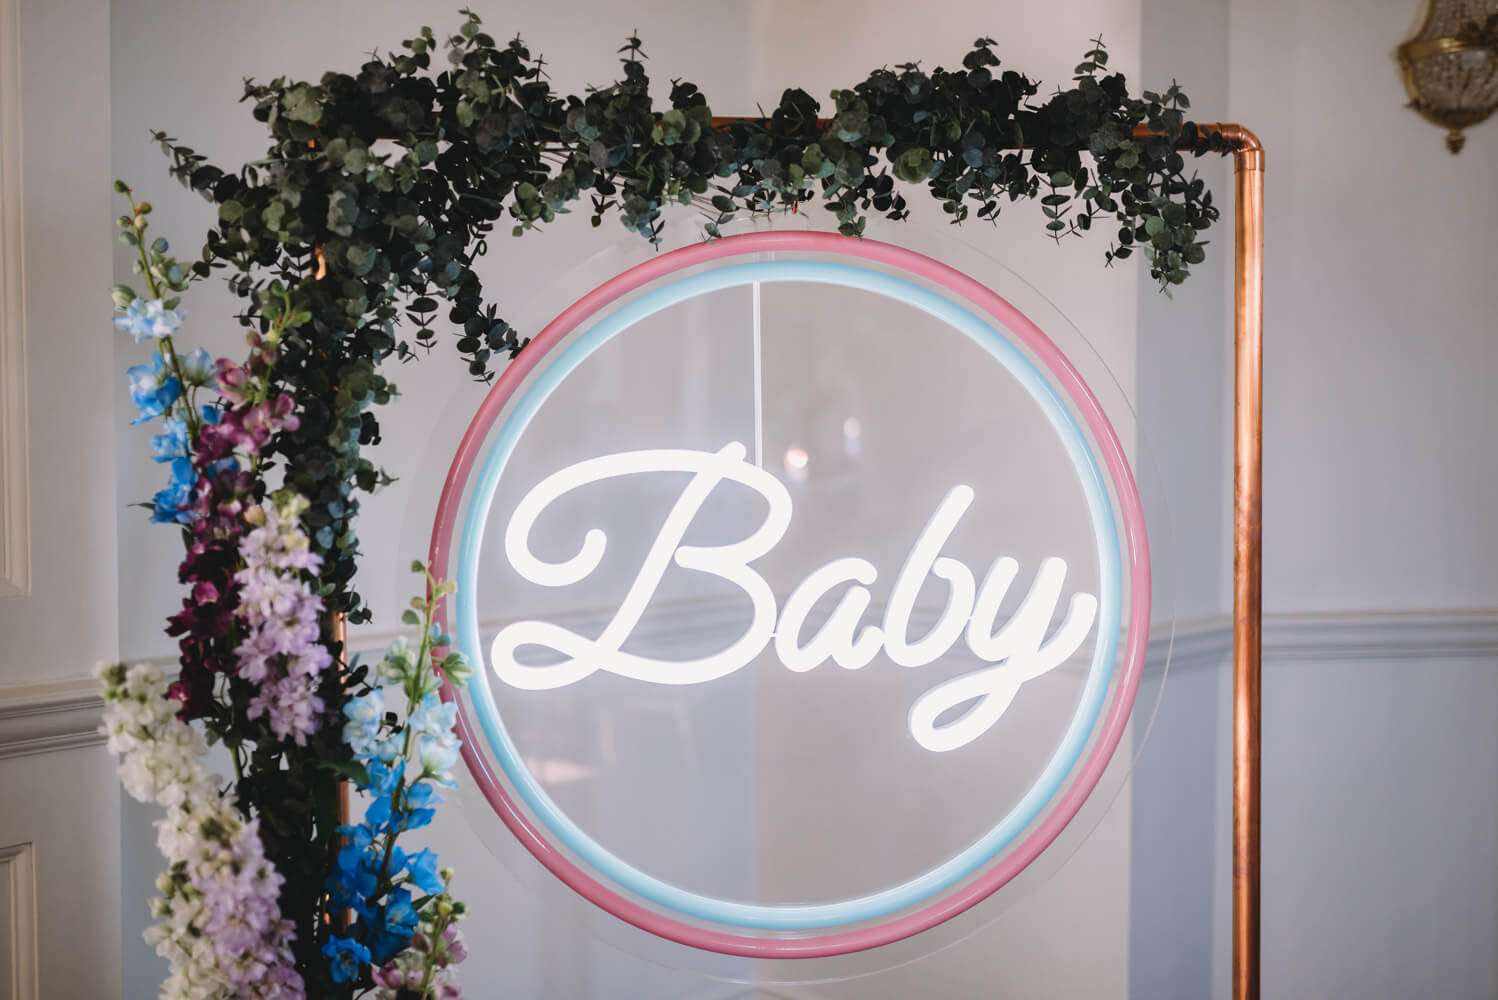 A giant neon baby sign